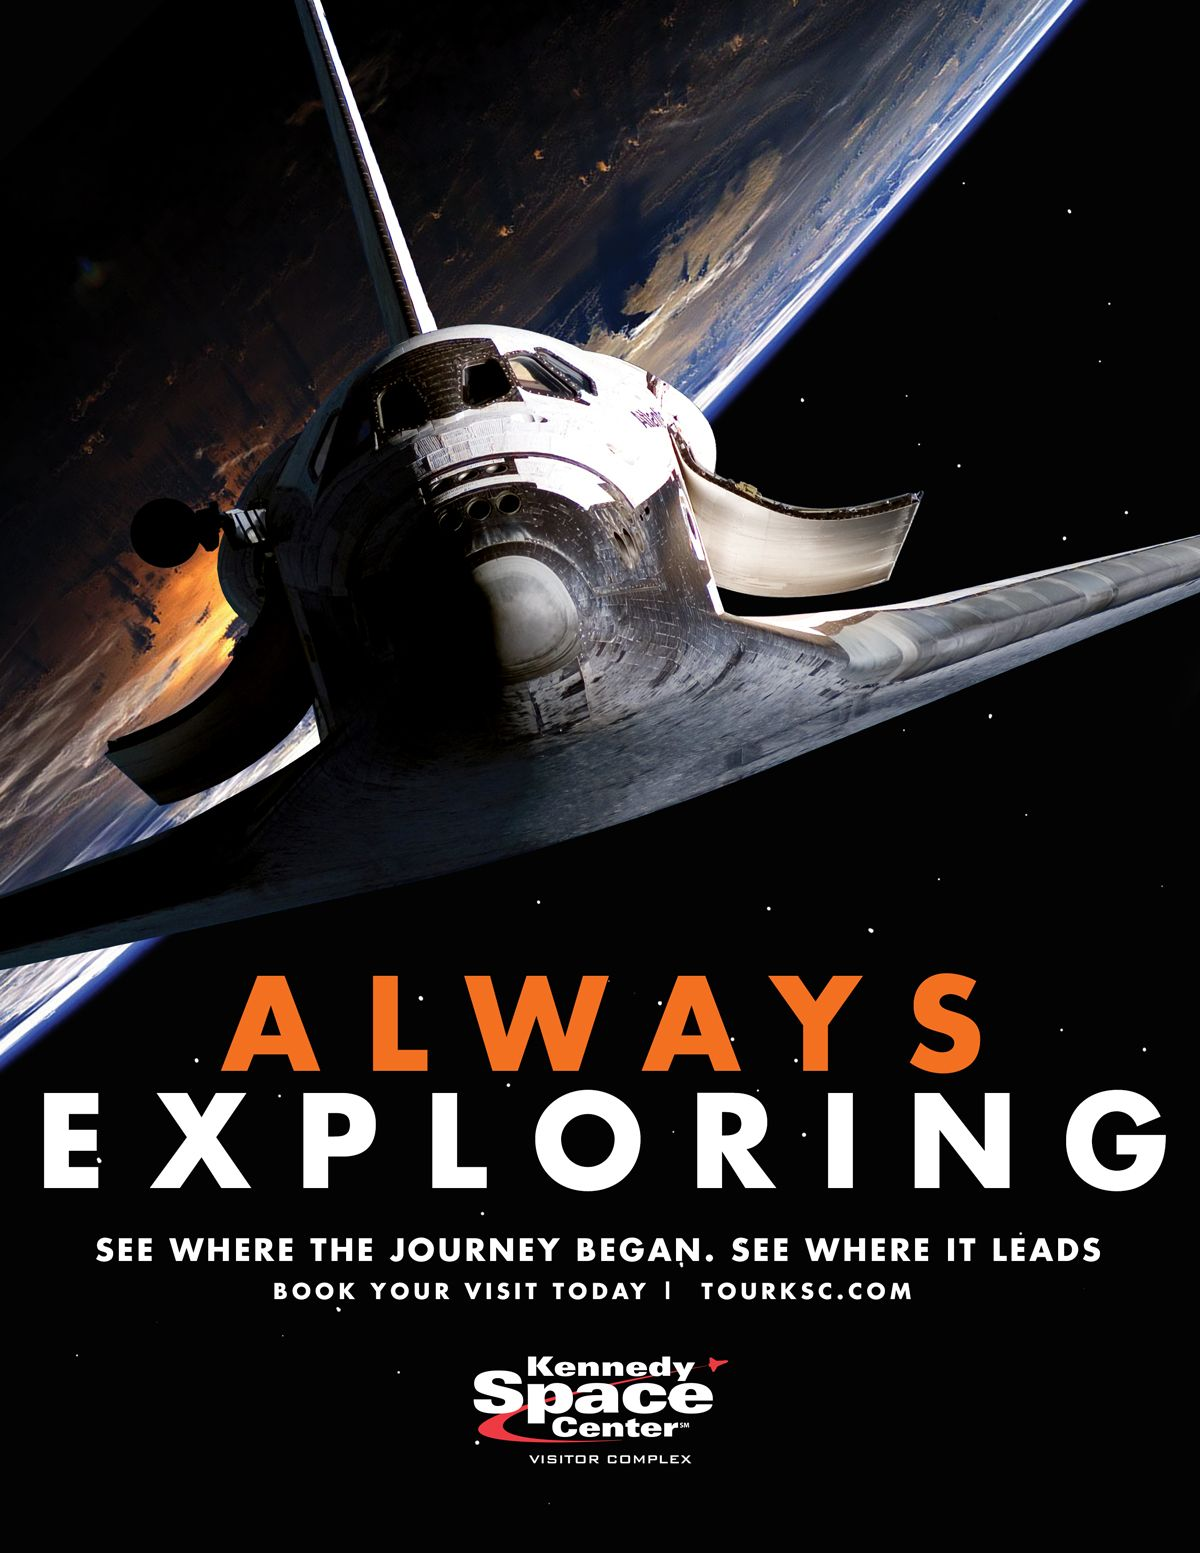 Kennedy Space Center's 2015 Brand Campaign